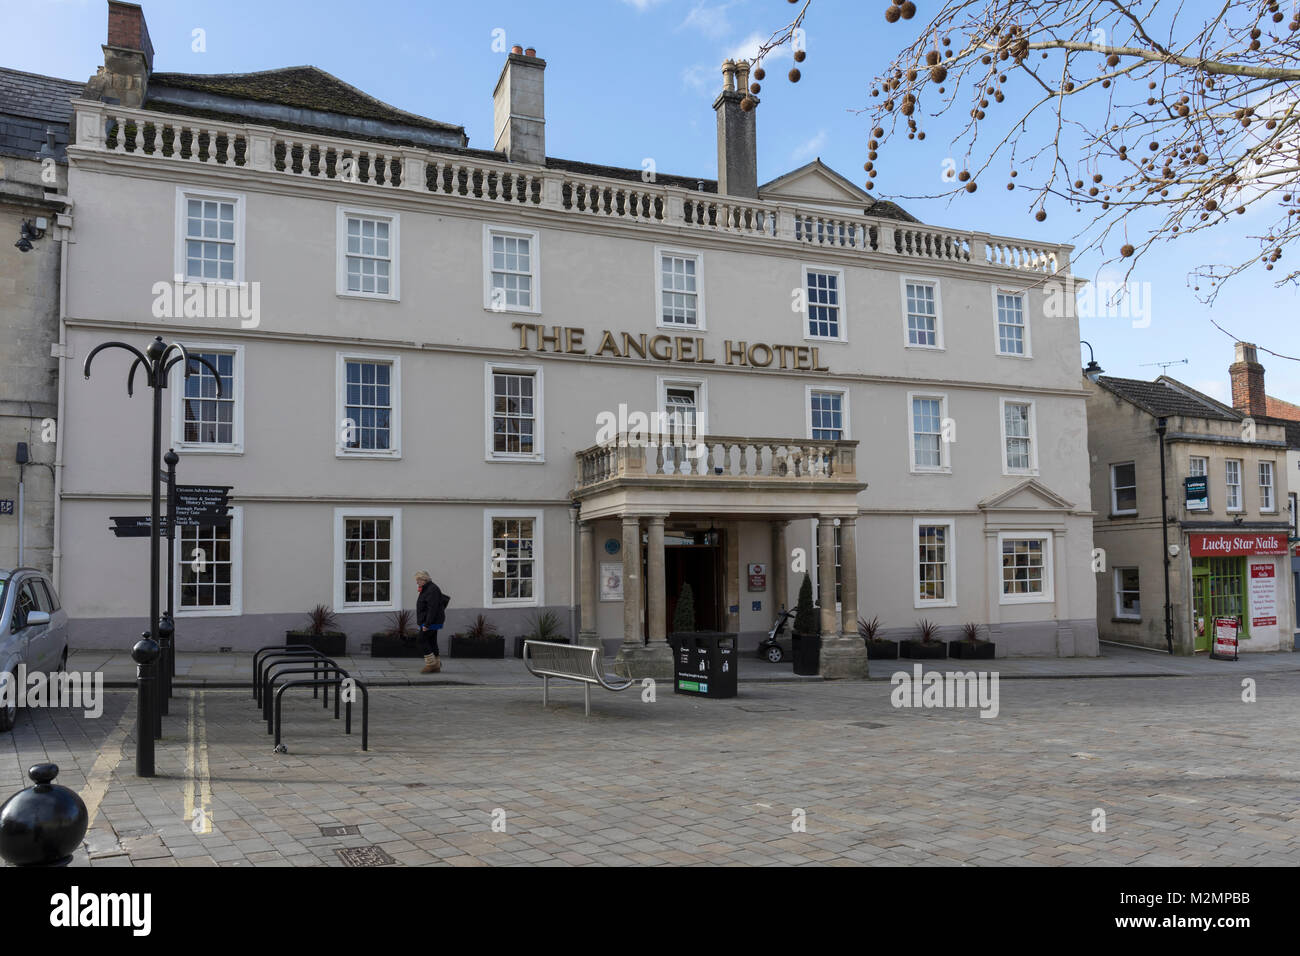 The Angel Hotel, Chippenham, Wiltshire, England - Stock Image